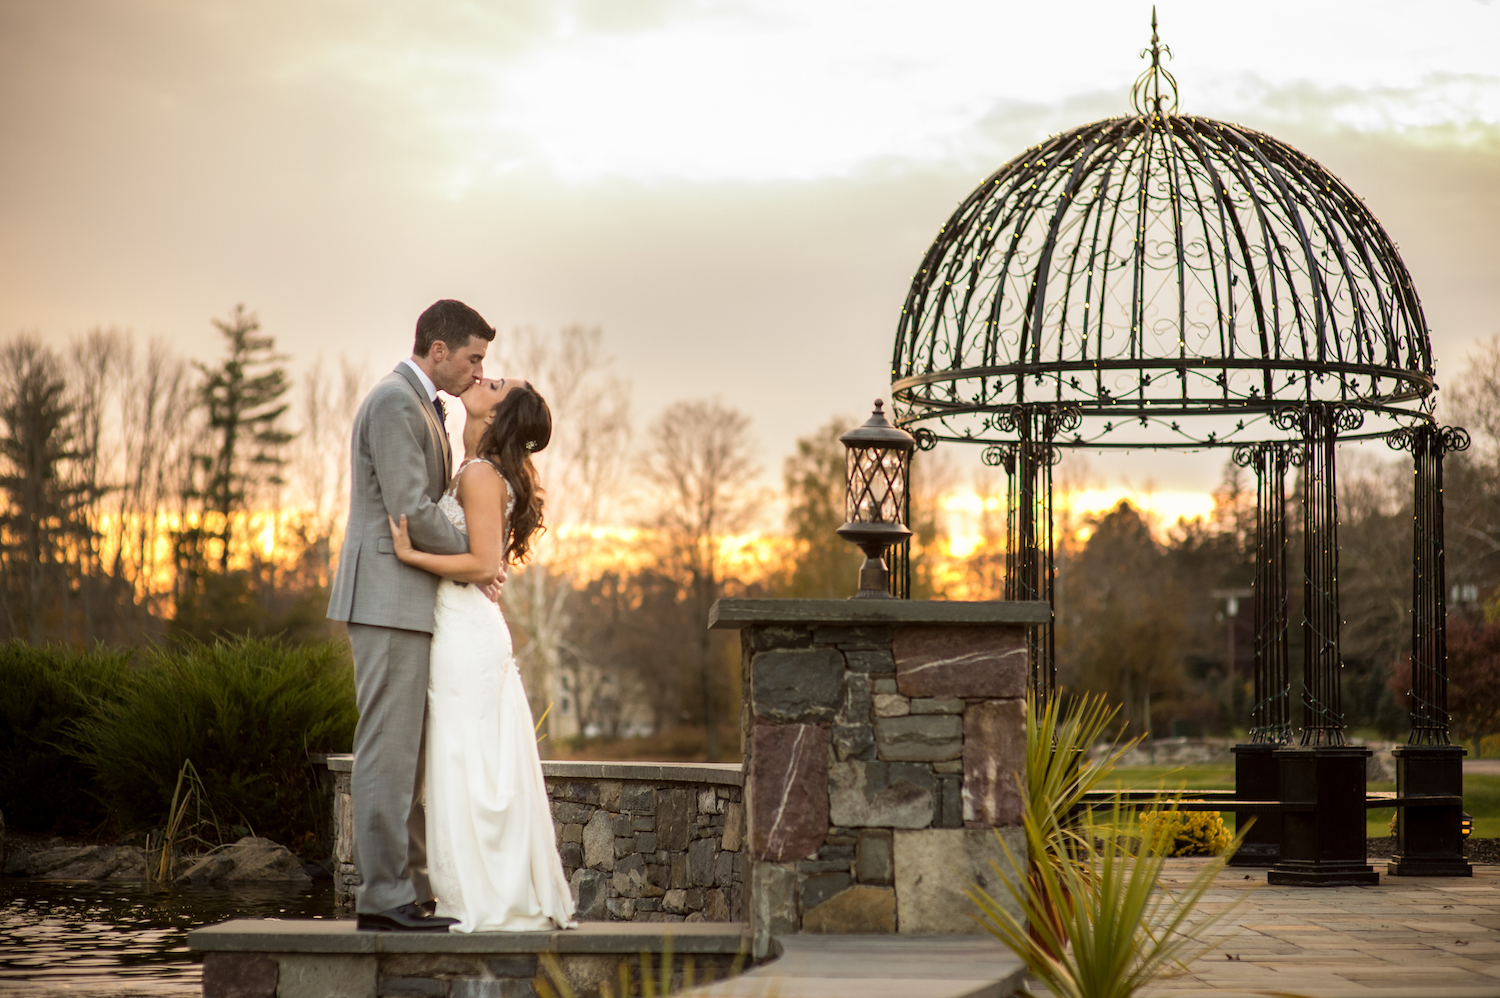 Madeline and John – Wedding Photo Highlights from the Falkirk Estate in Central Valley, NY